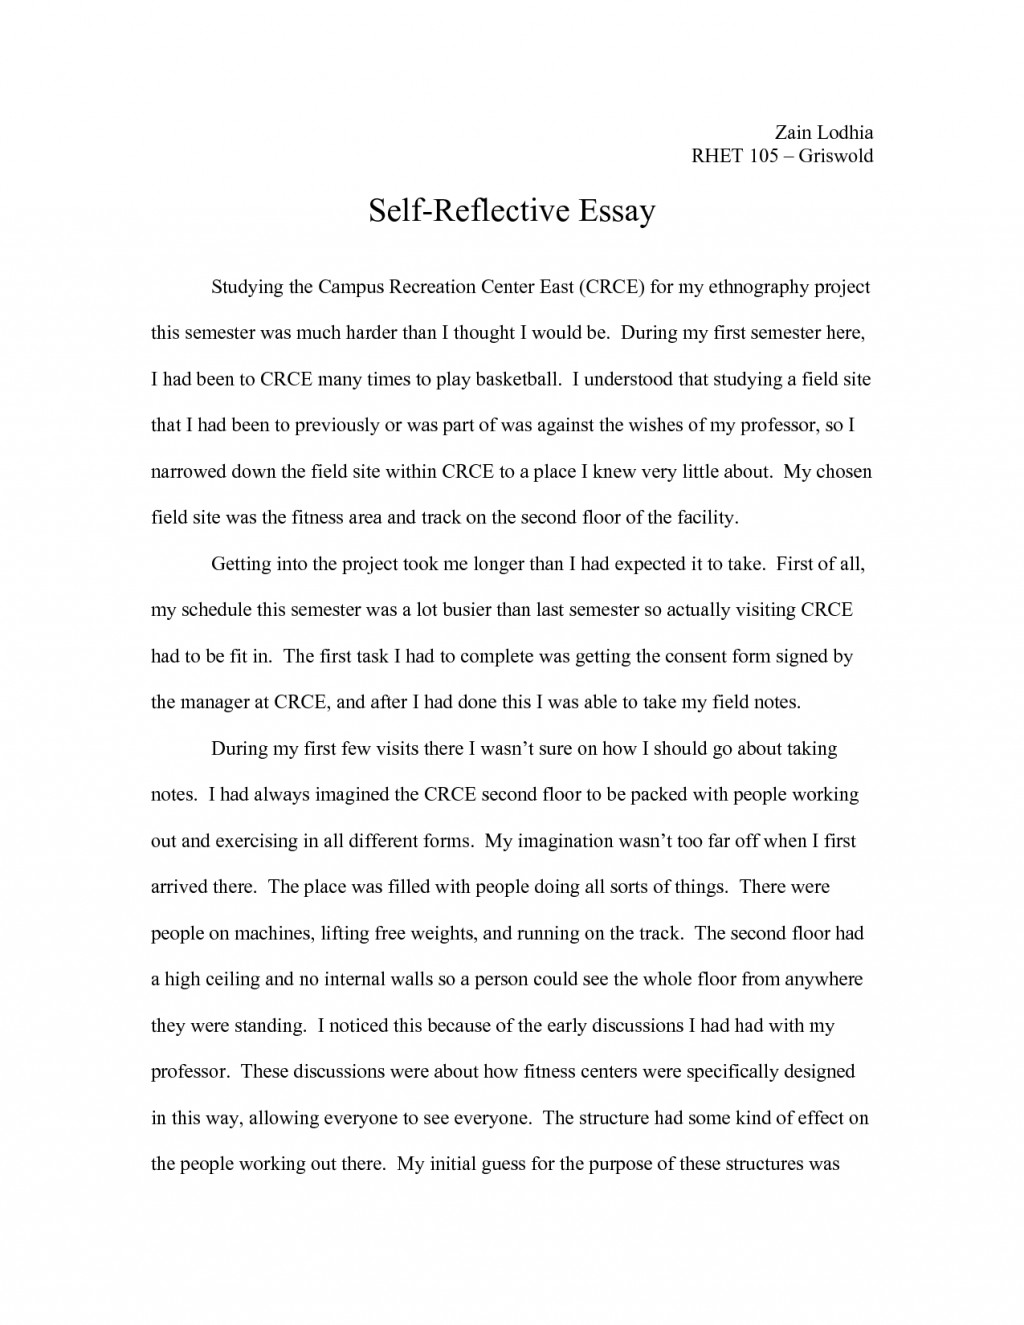 018 Qal0pwnf46 Fitness Essay Exceptional Personal Topics Health And Conclusion Large